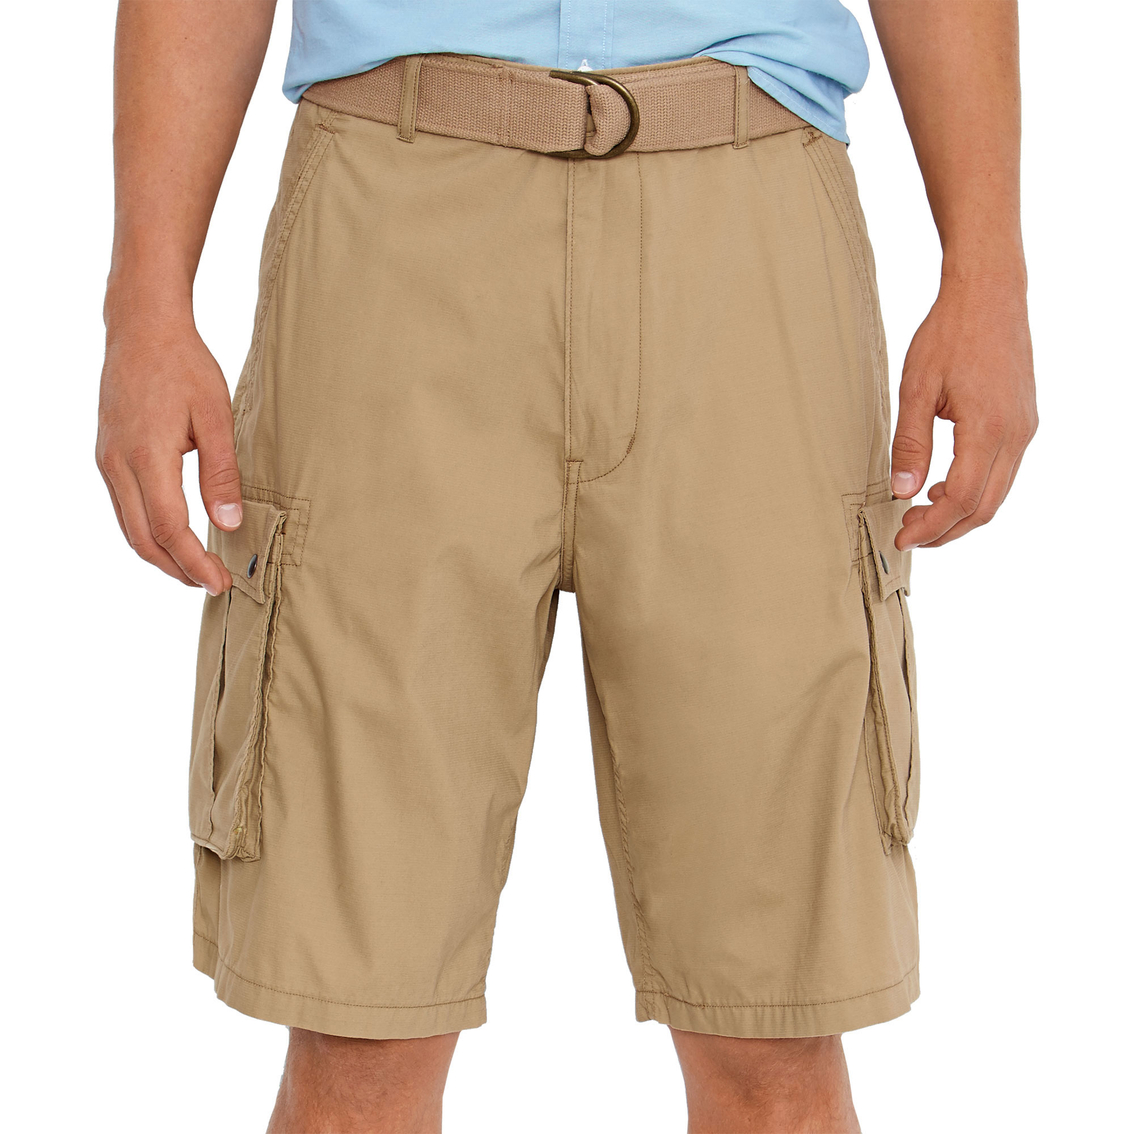 ee1c520bf6 Levi's Snap Cargo Shorts | Shorts | Father's Day Shop | Shop The ...